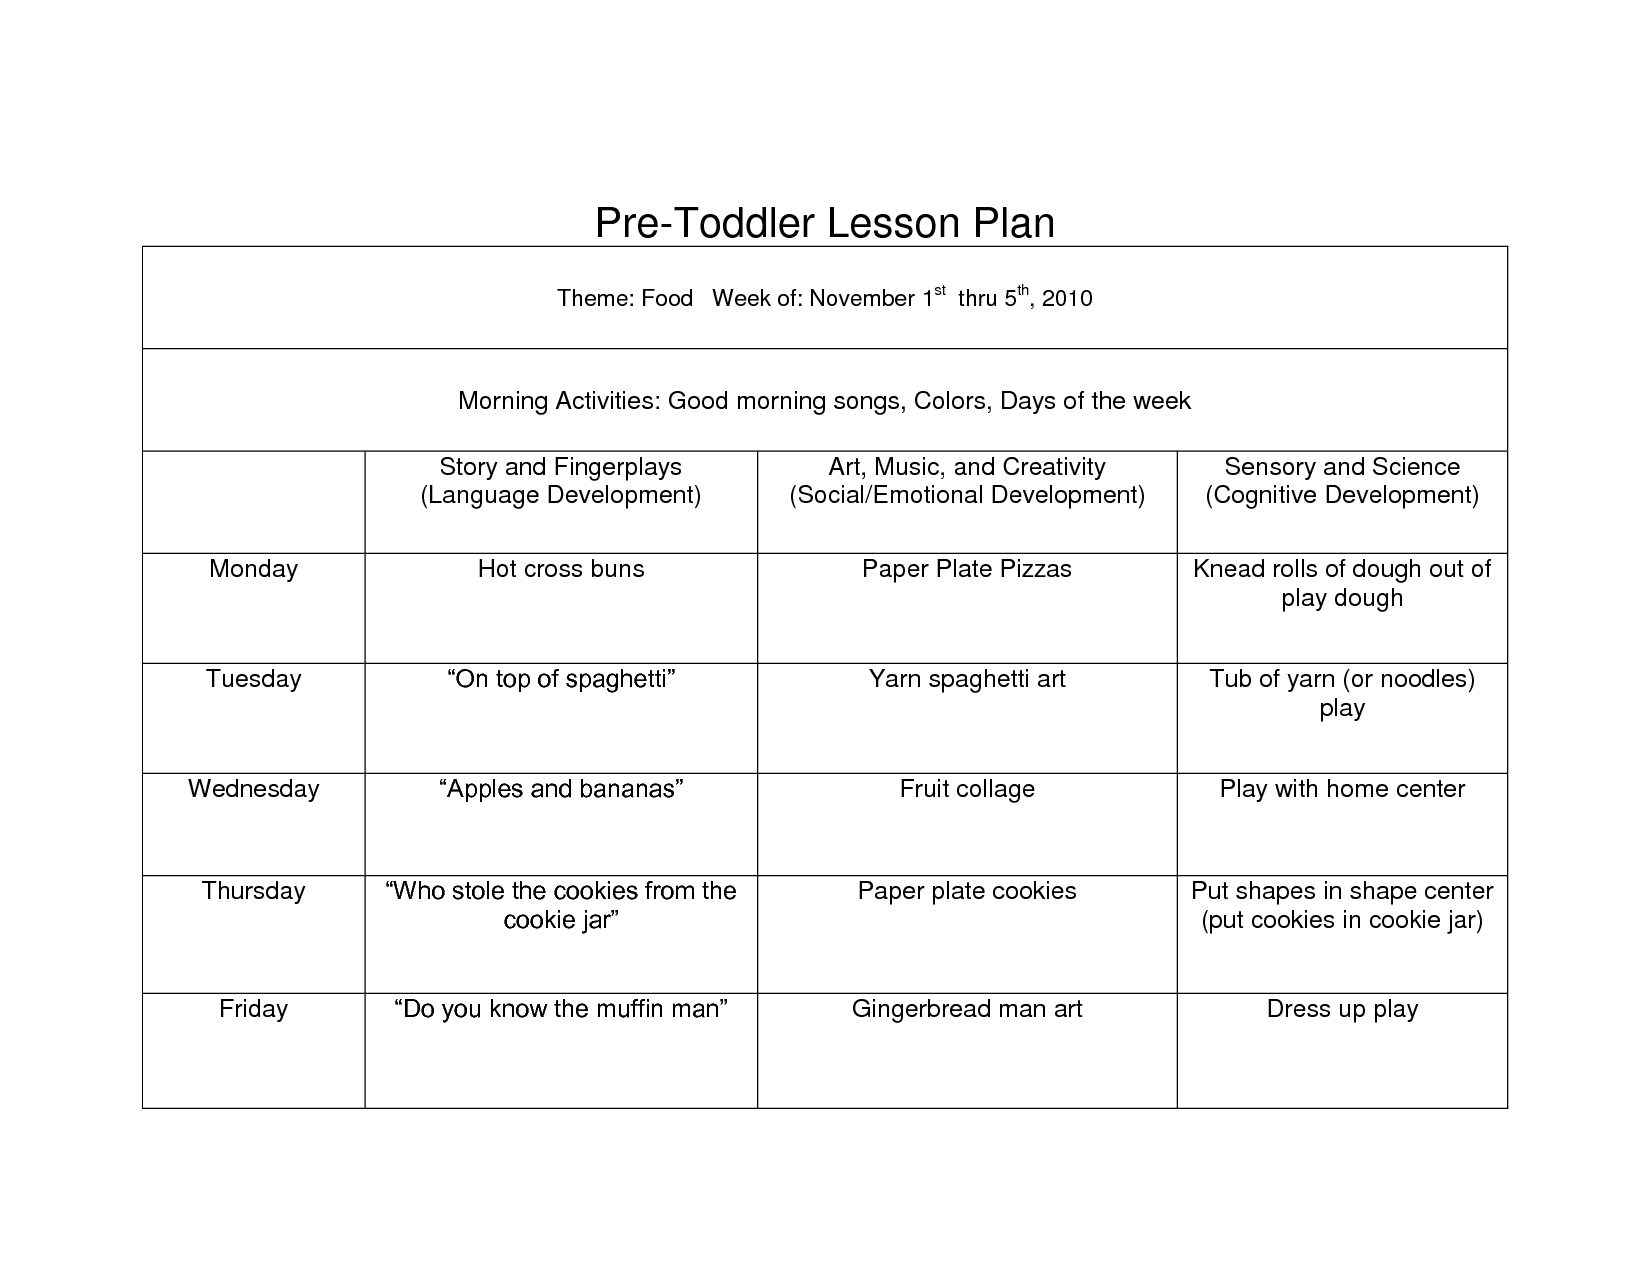 Creative curriculum blank lesson plan wcc pre toddler for Teaching strategies gold lesson plan template